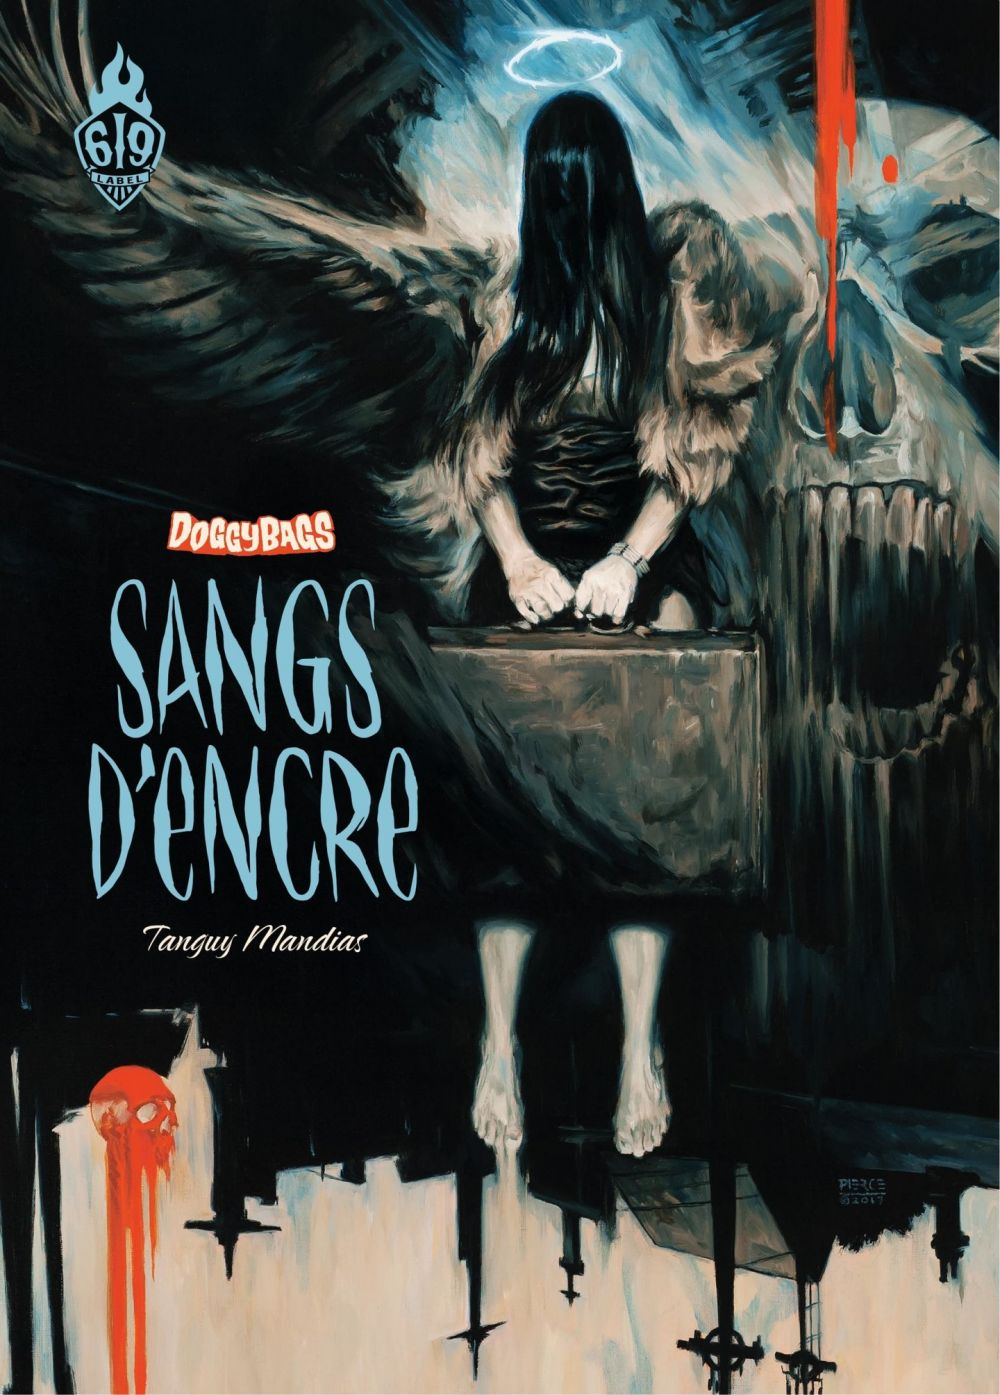 DoggyBags - Sangs d'Encre